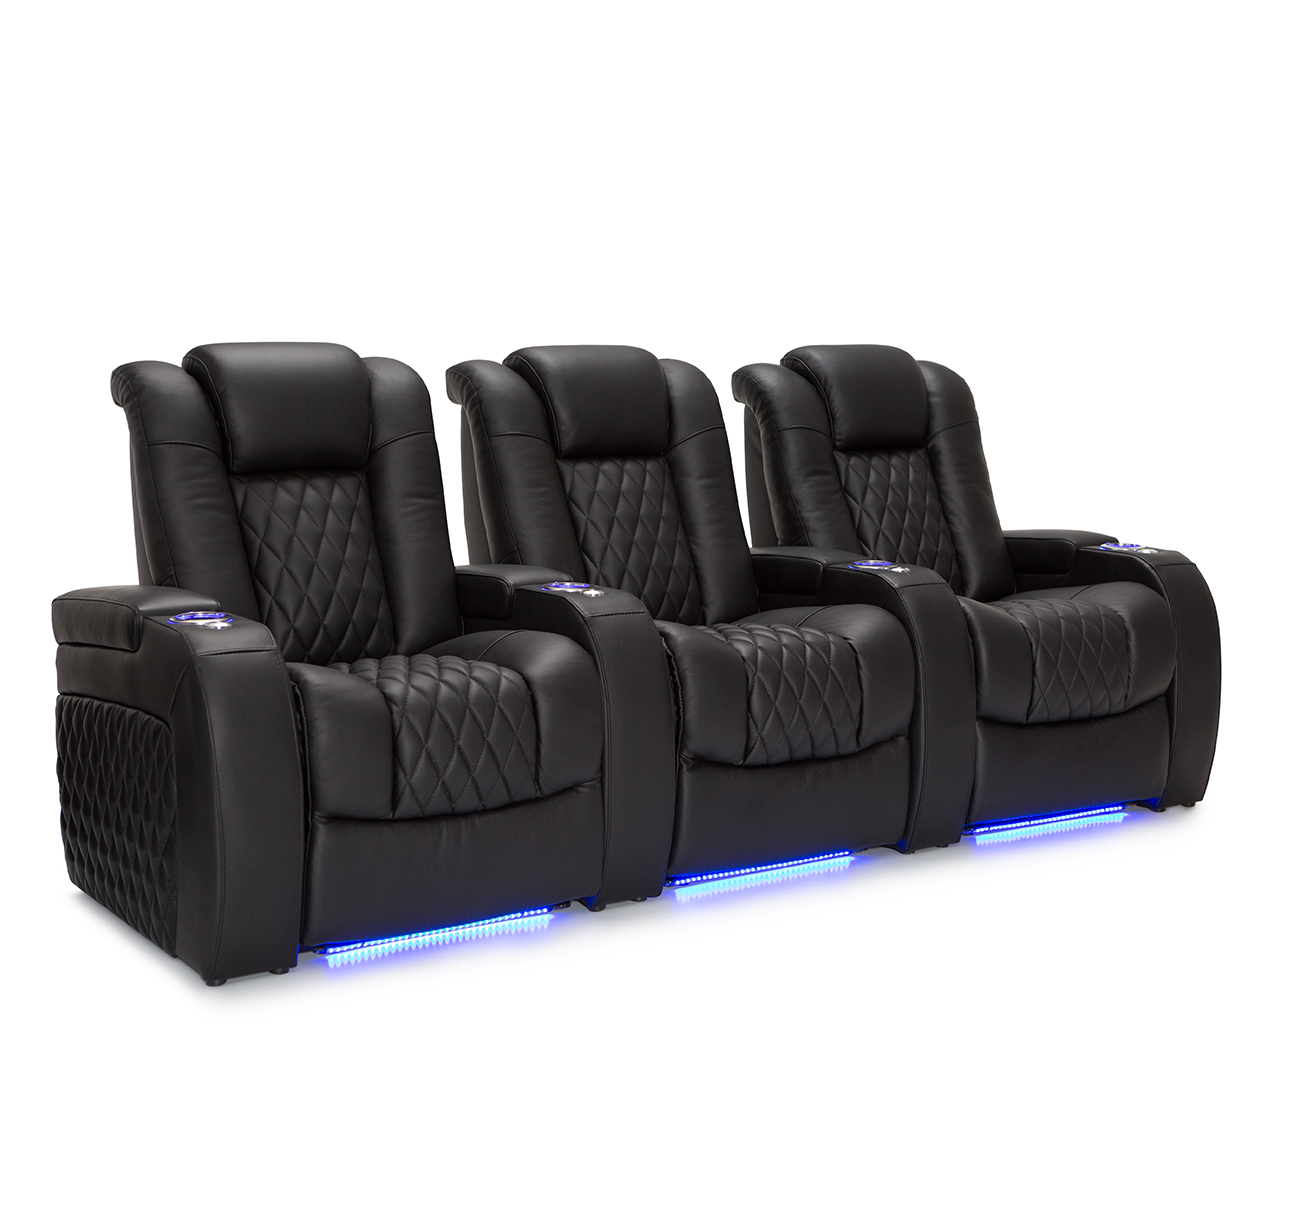 Movie Theater Chairs Movie Theater Sofas Movie Theaters With Beds Recliners Yes